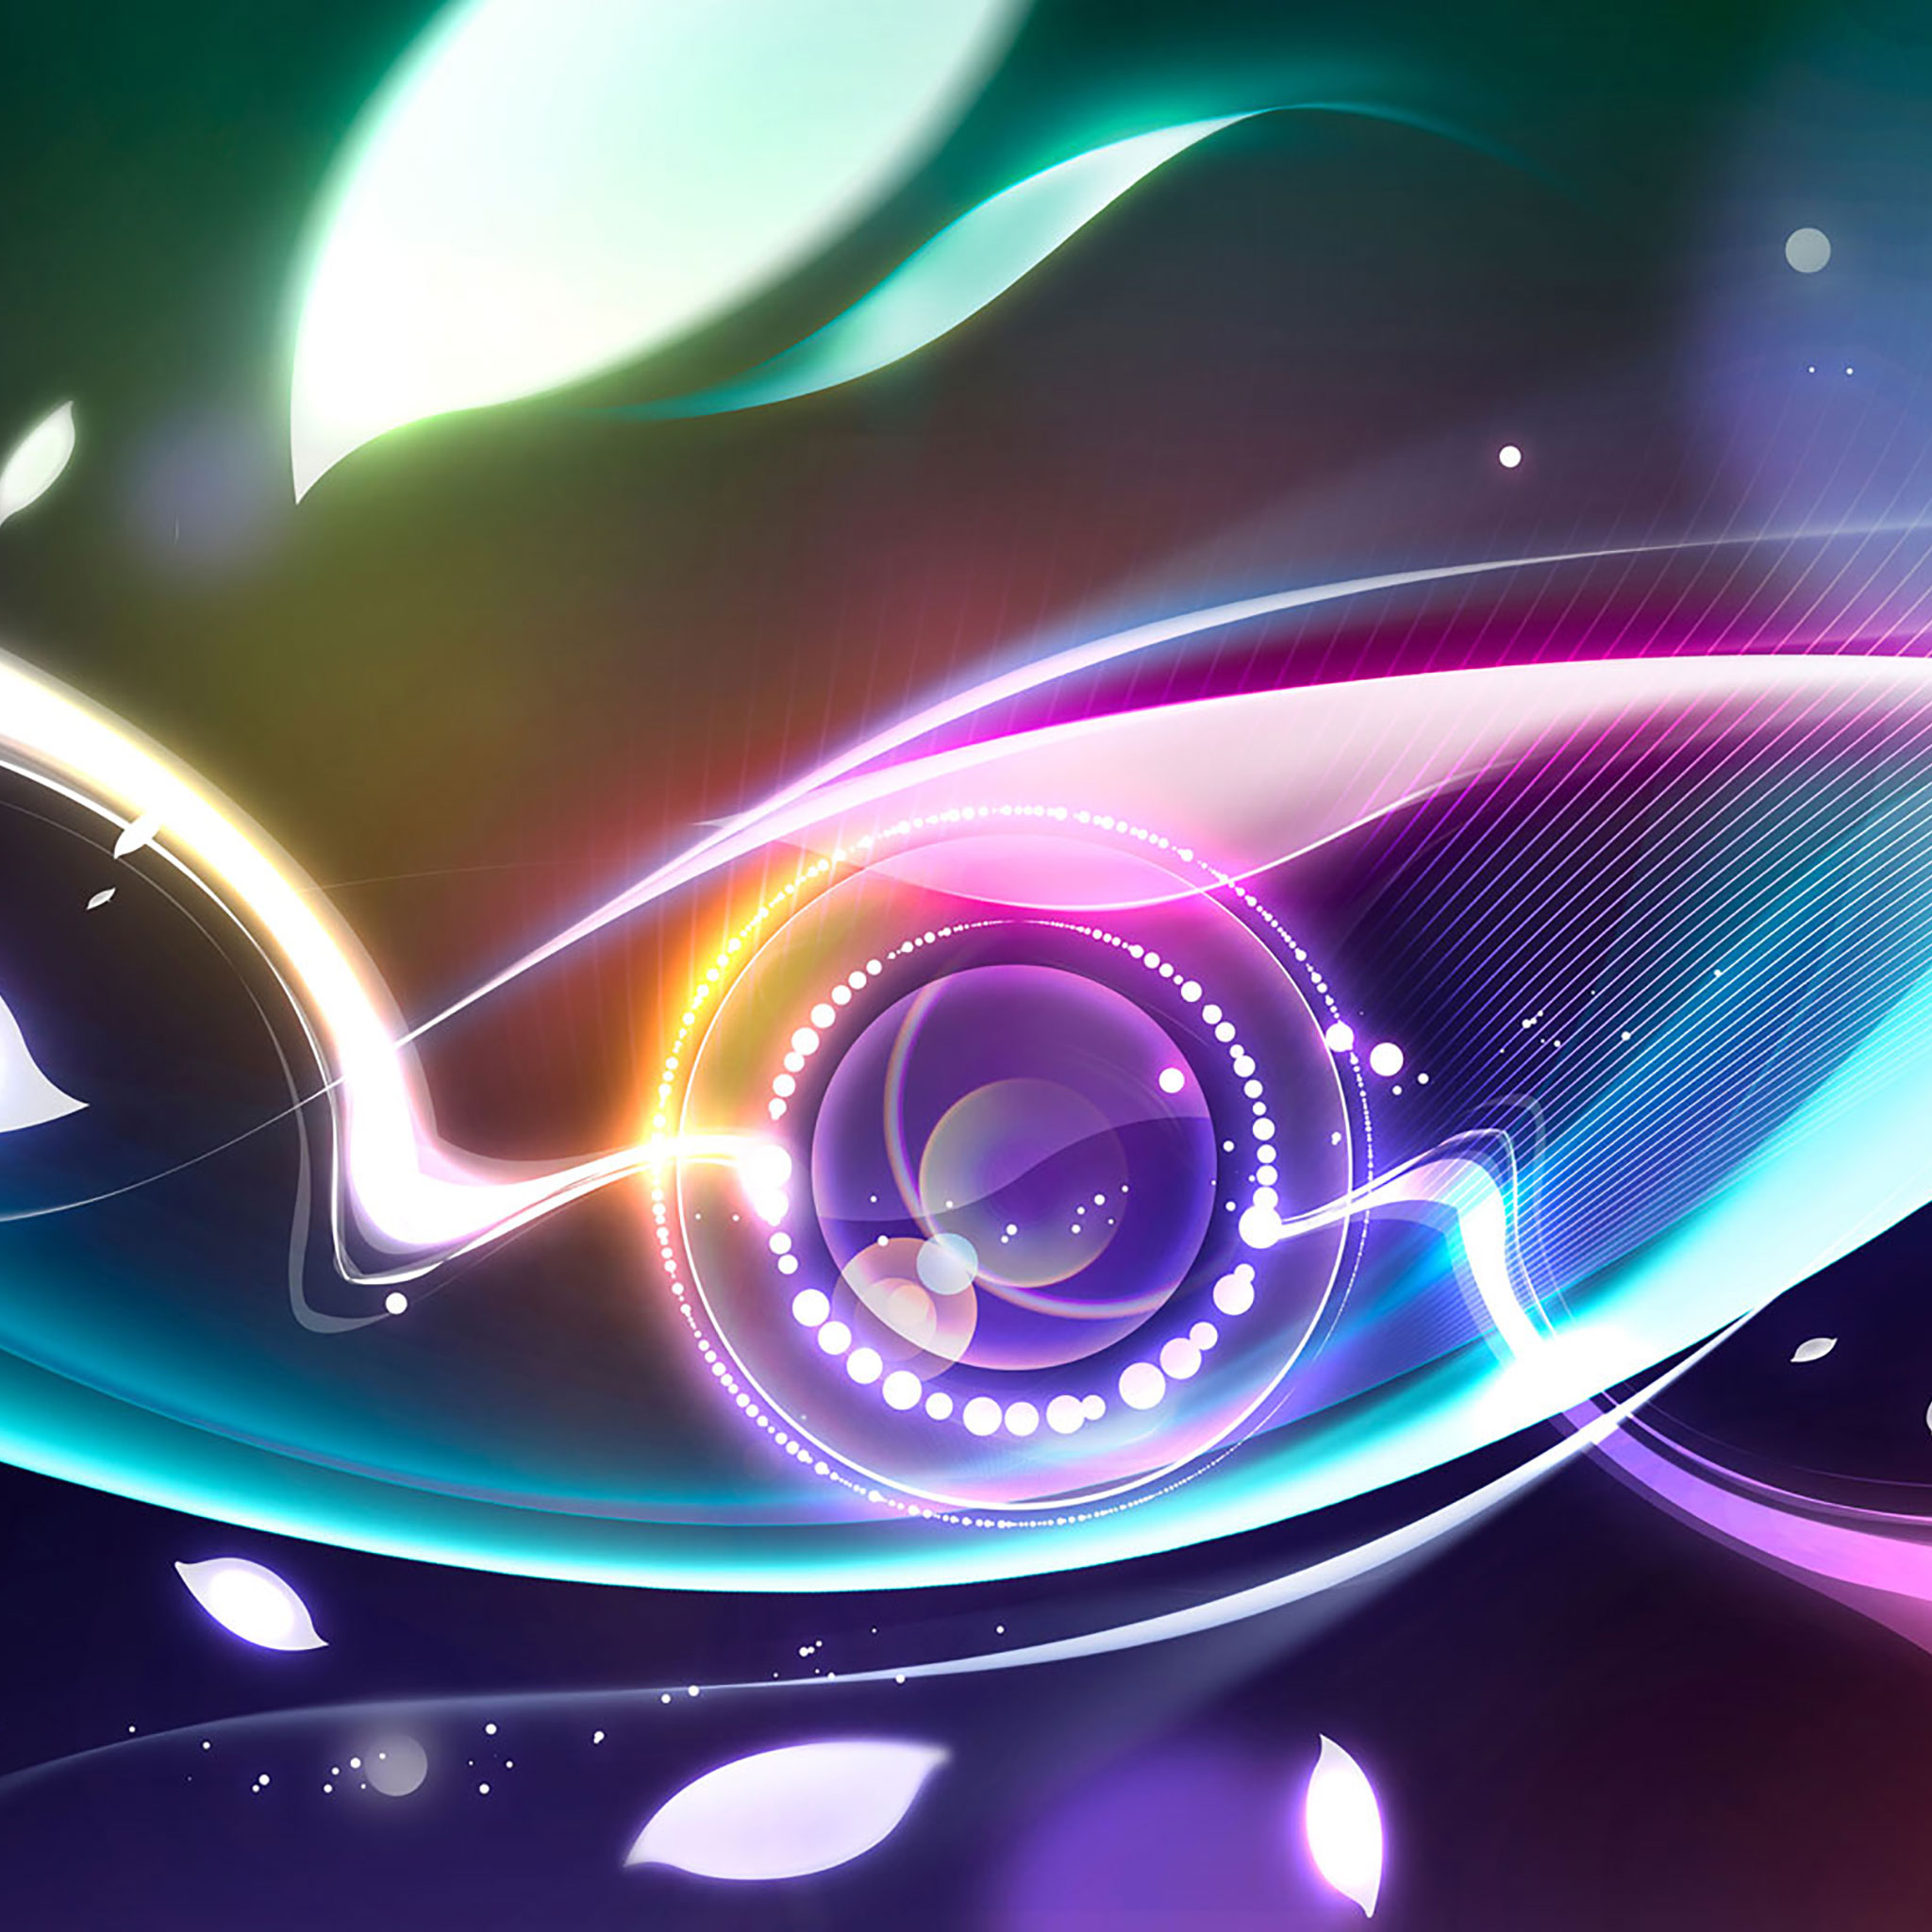 75 HD Abstract IPad Backgrounds